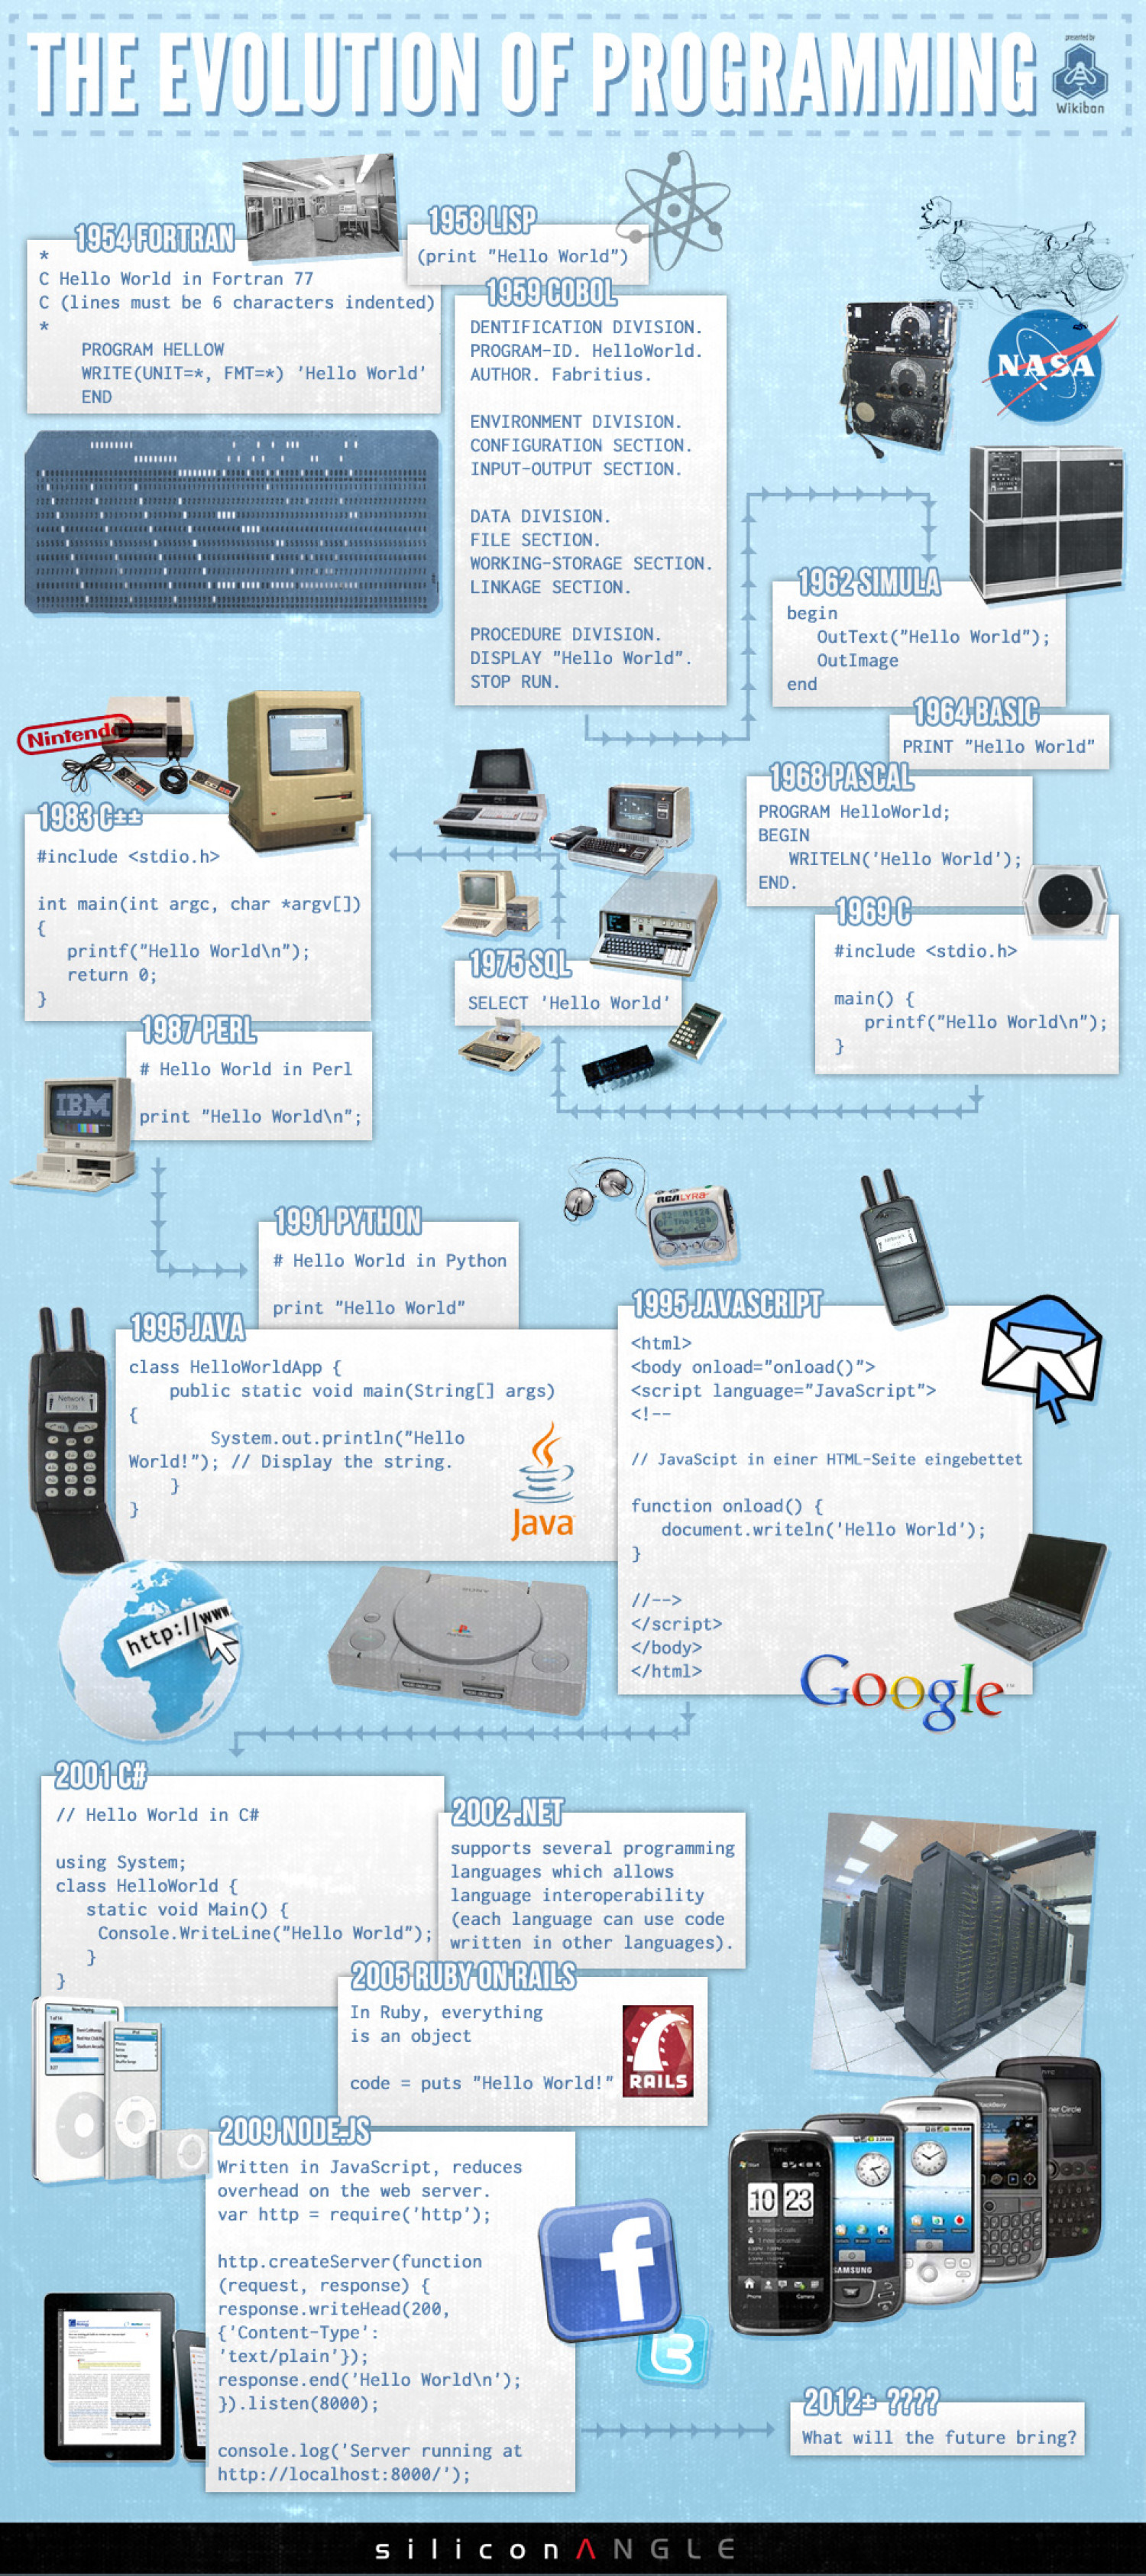 The Evolution of Programming Infographic